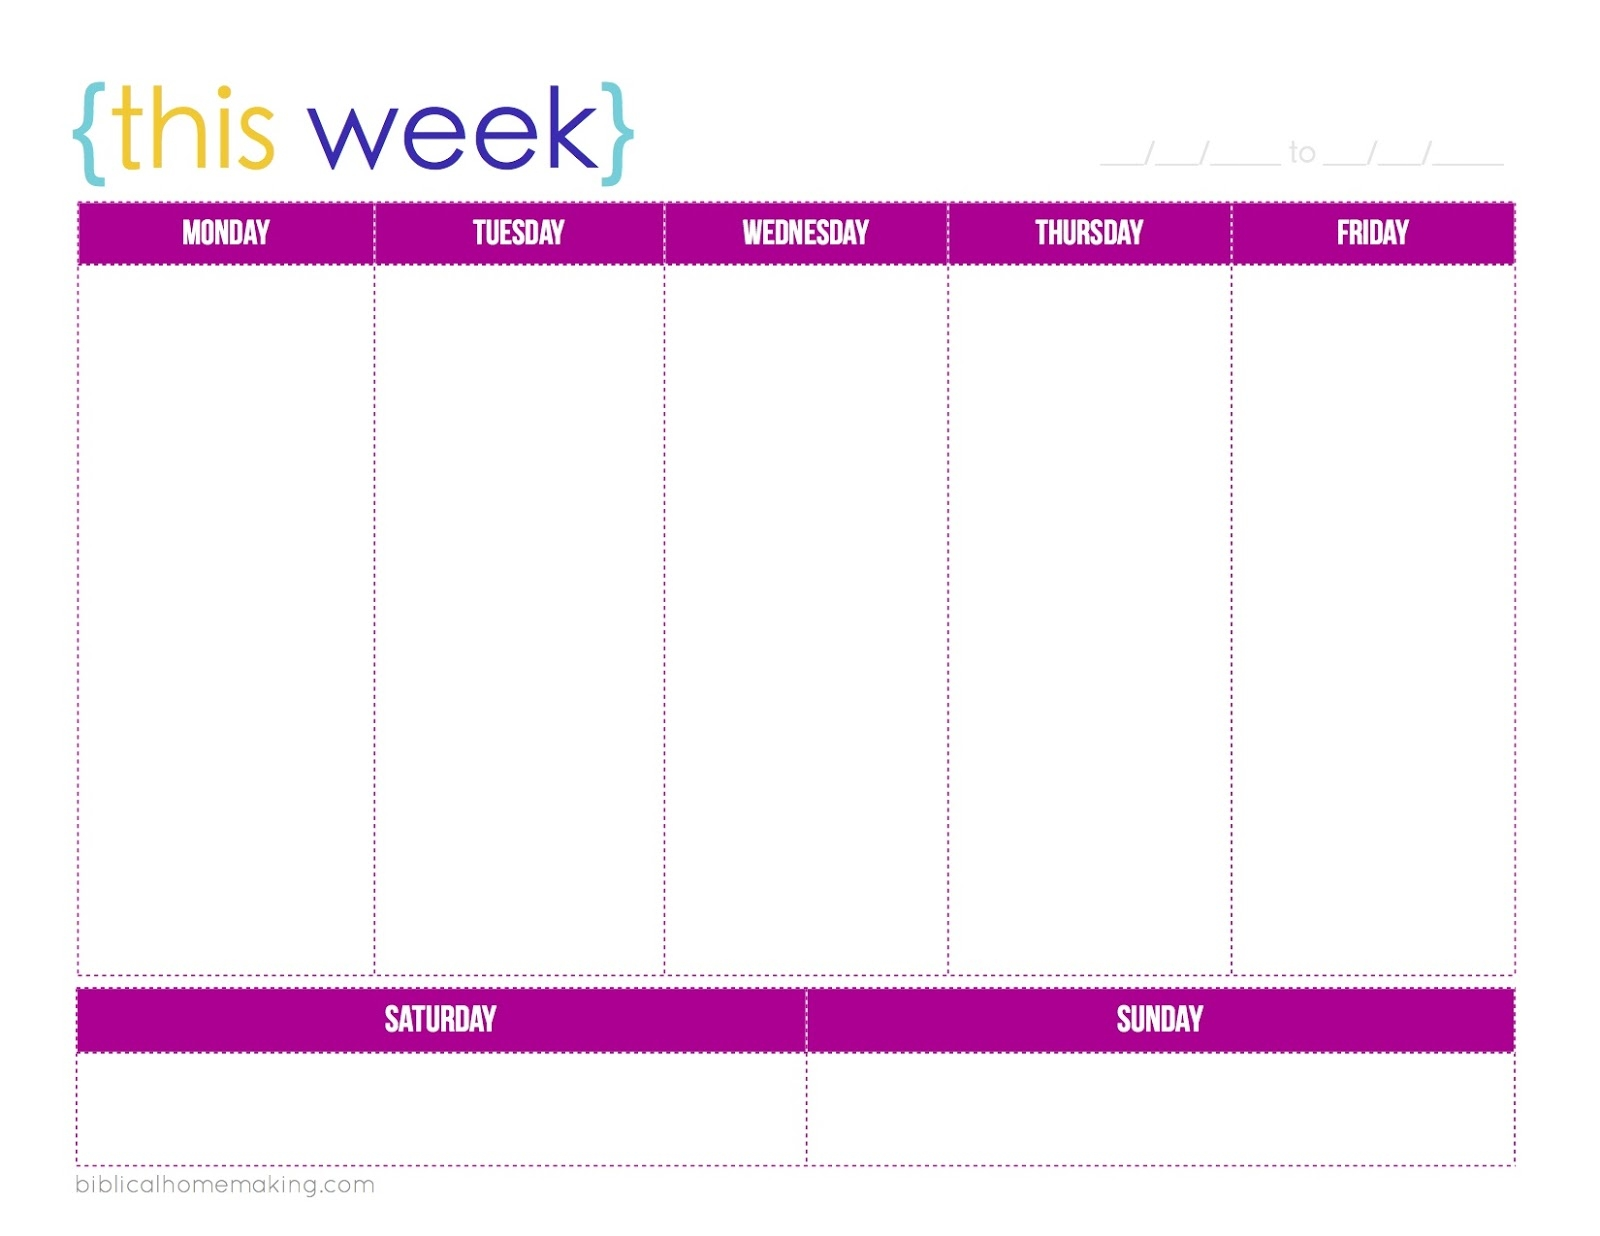 this week a free weekly planner printable biblical homemaking 7 Day Weekly Planner Template Printable erdferdf